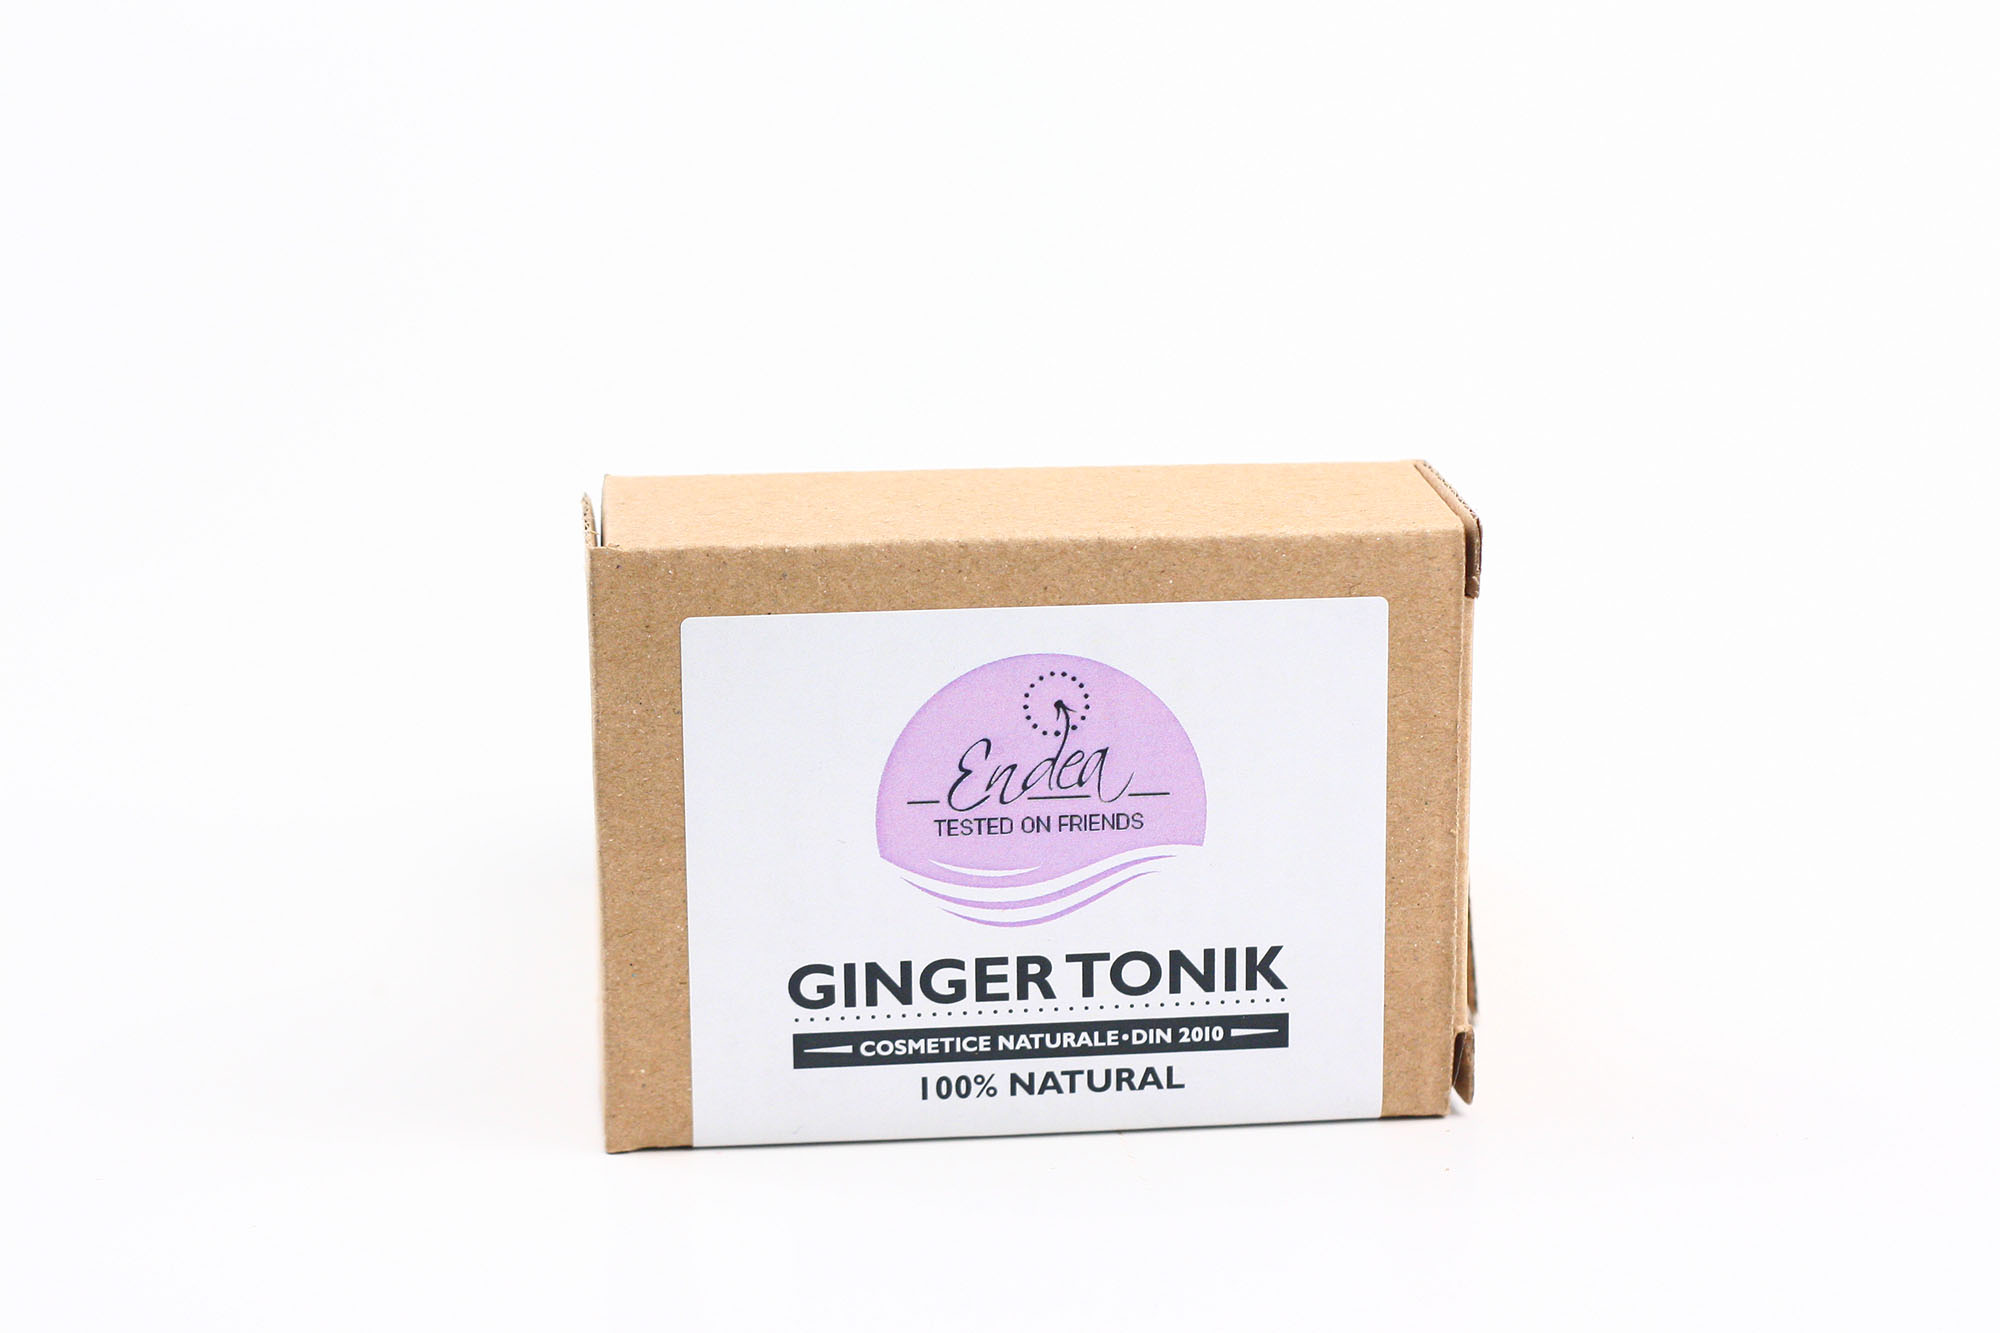 Săpun revigorant & hidratant cu ghimbir, lime & mentă - Ginger Tonik | Endea - Tested on friends